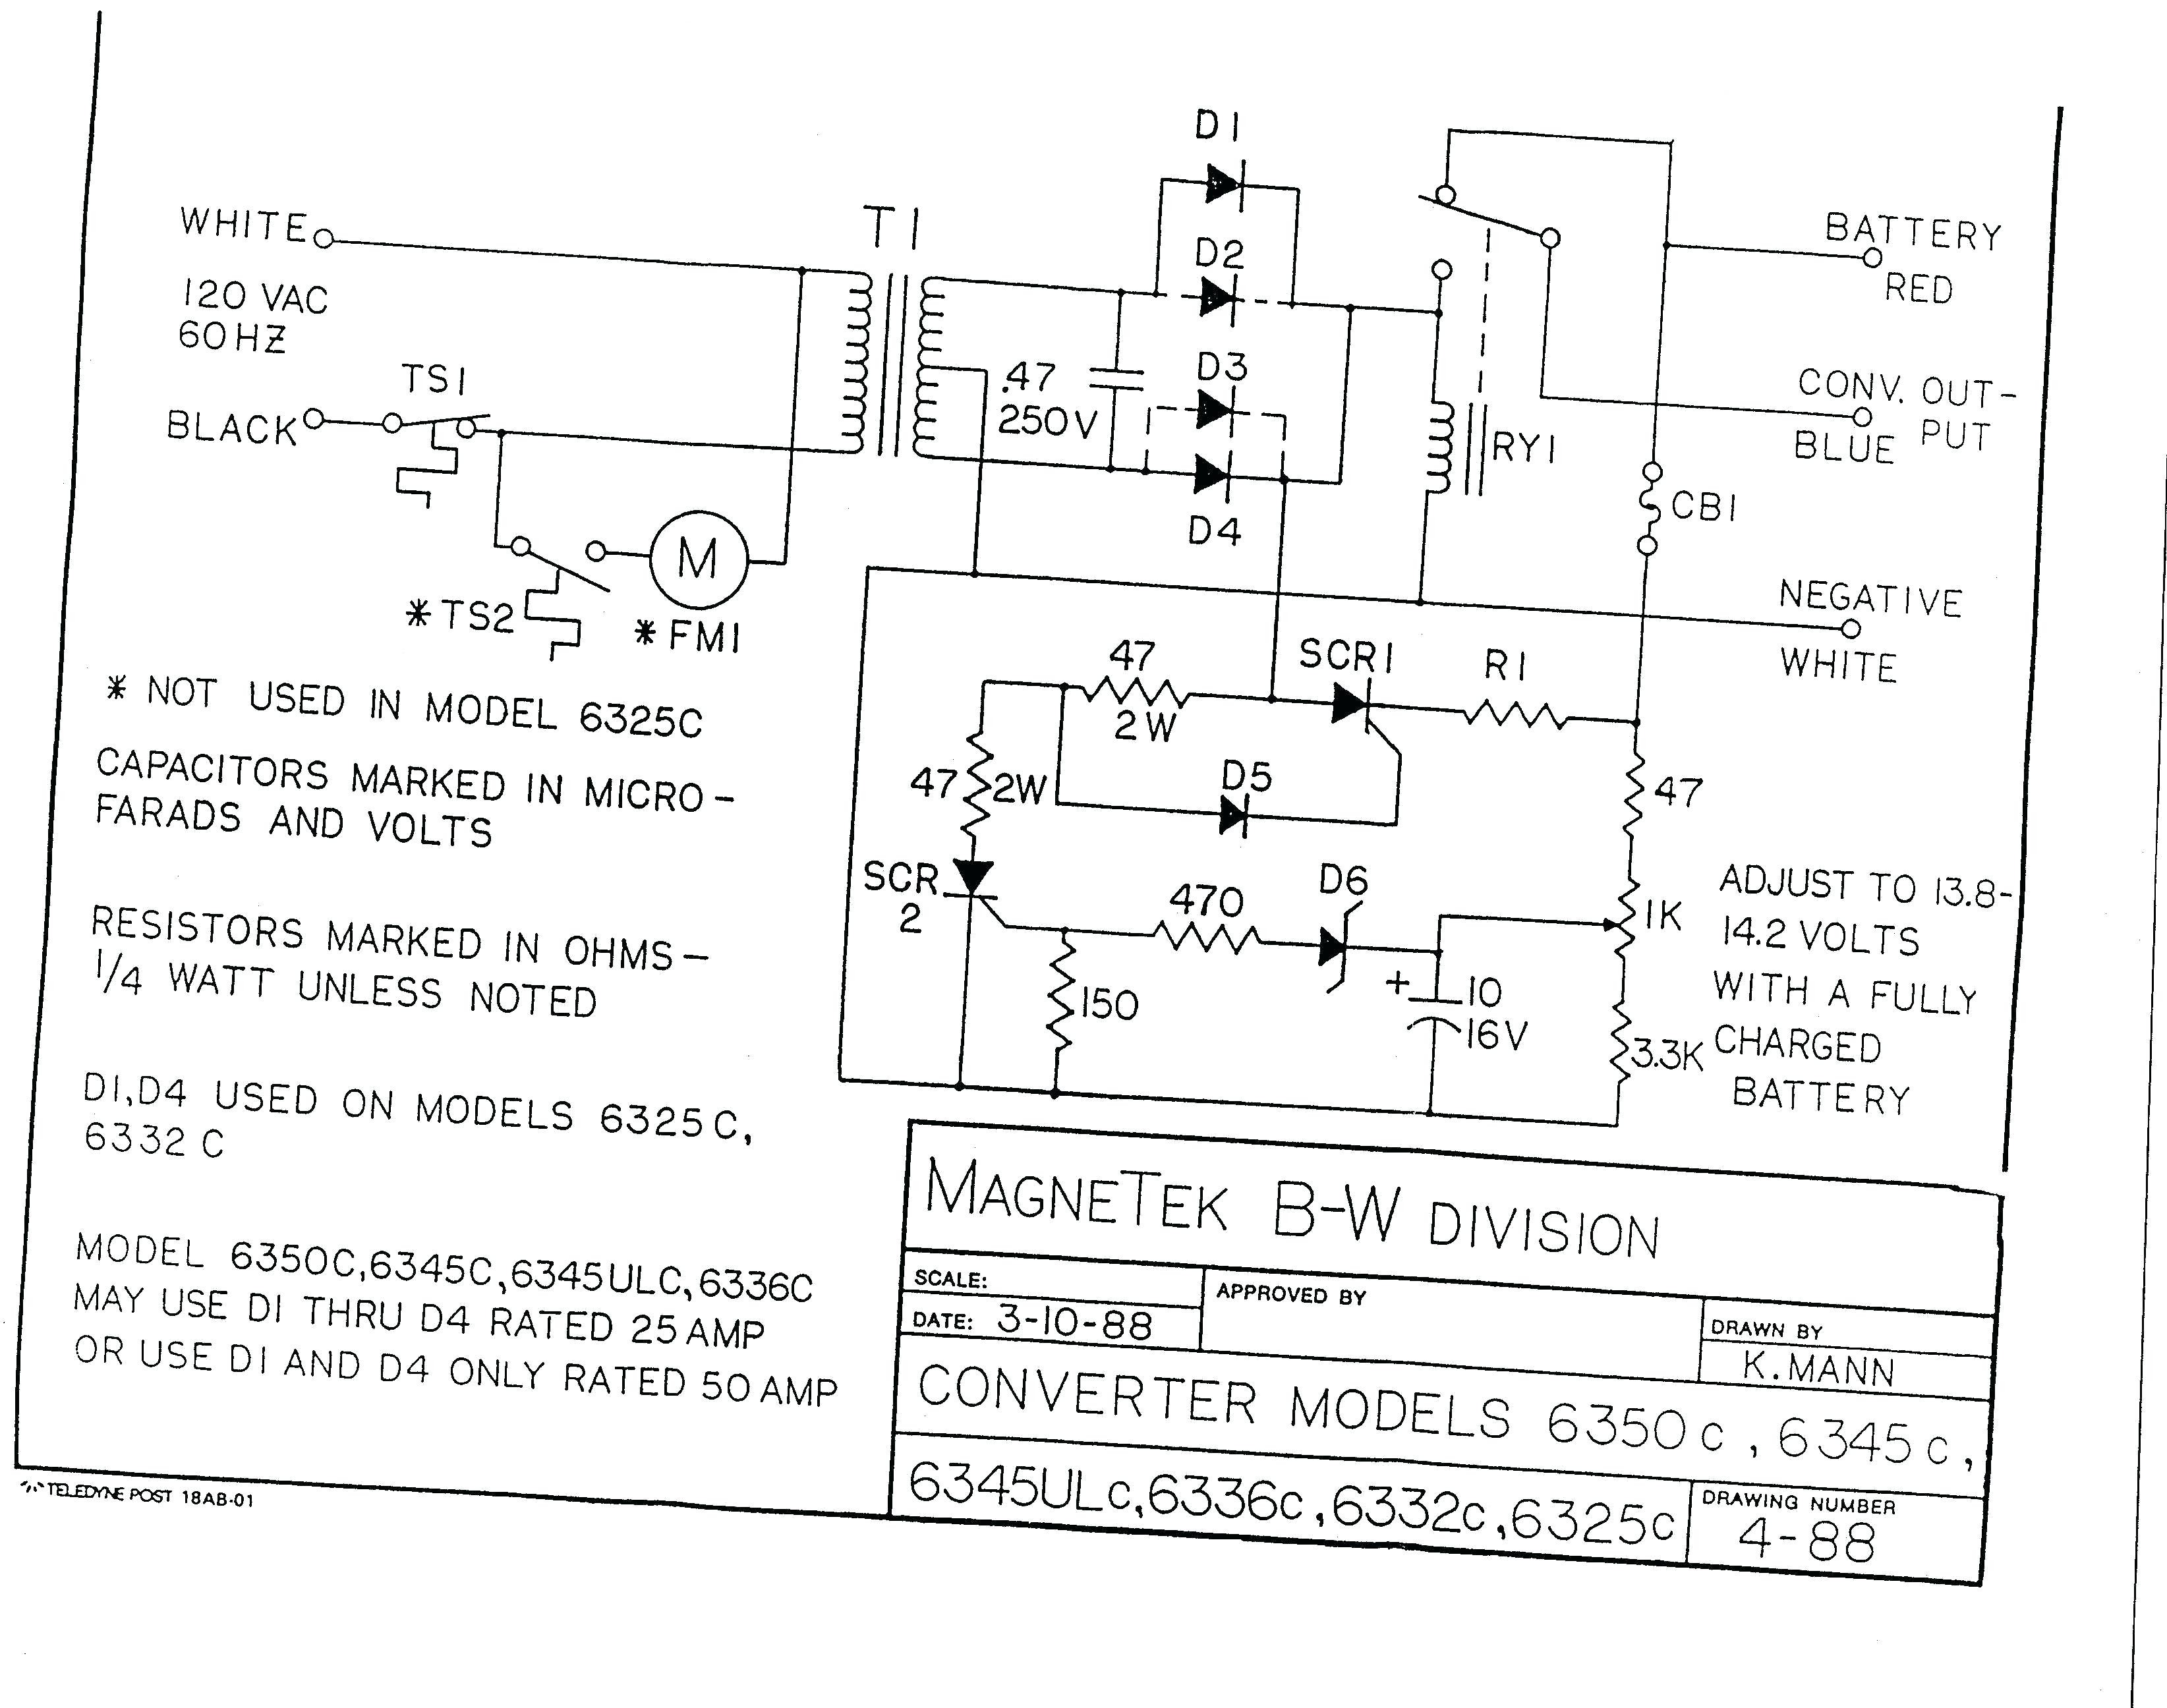 Wiring Diagram 2 Pin 120 Volt Electrical Diagrams 4 Prong Flasher Relay Unit Page And Outdoor